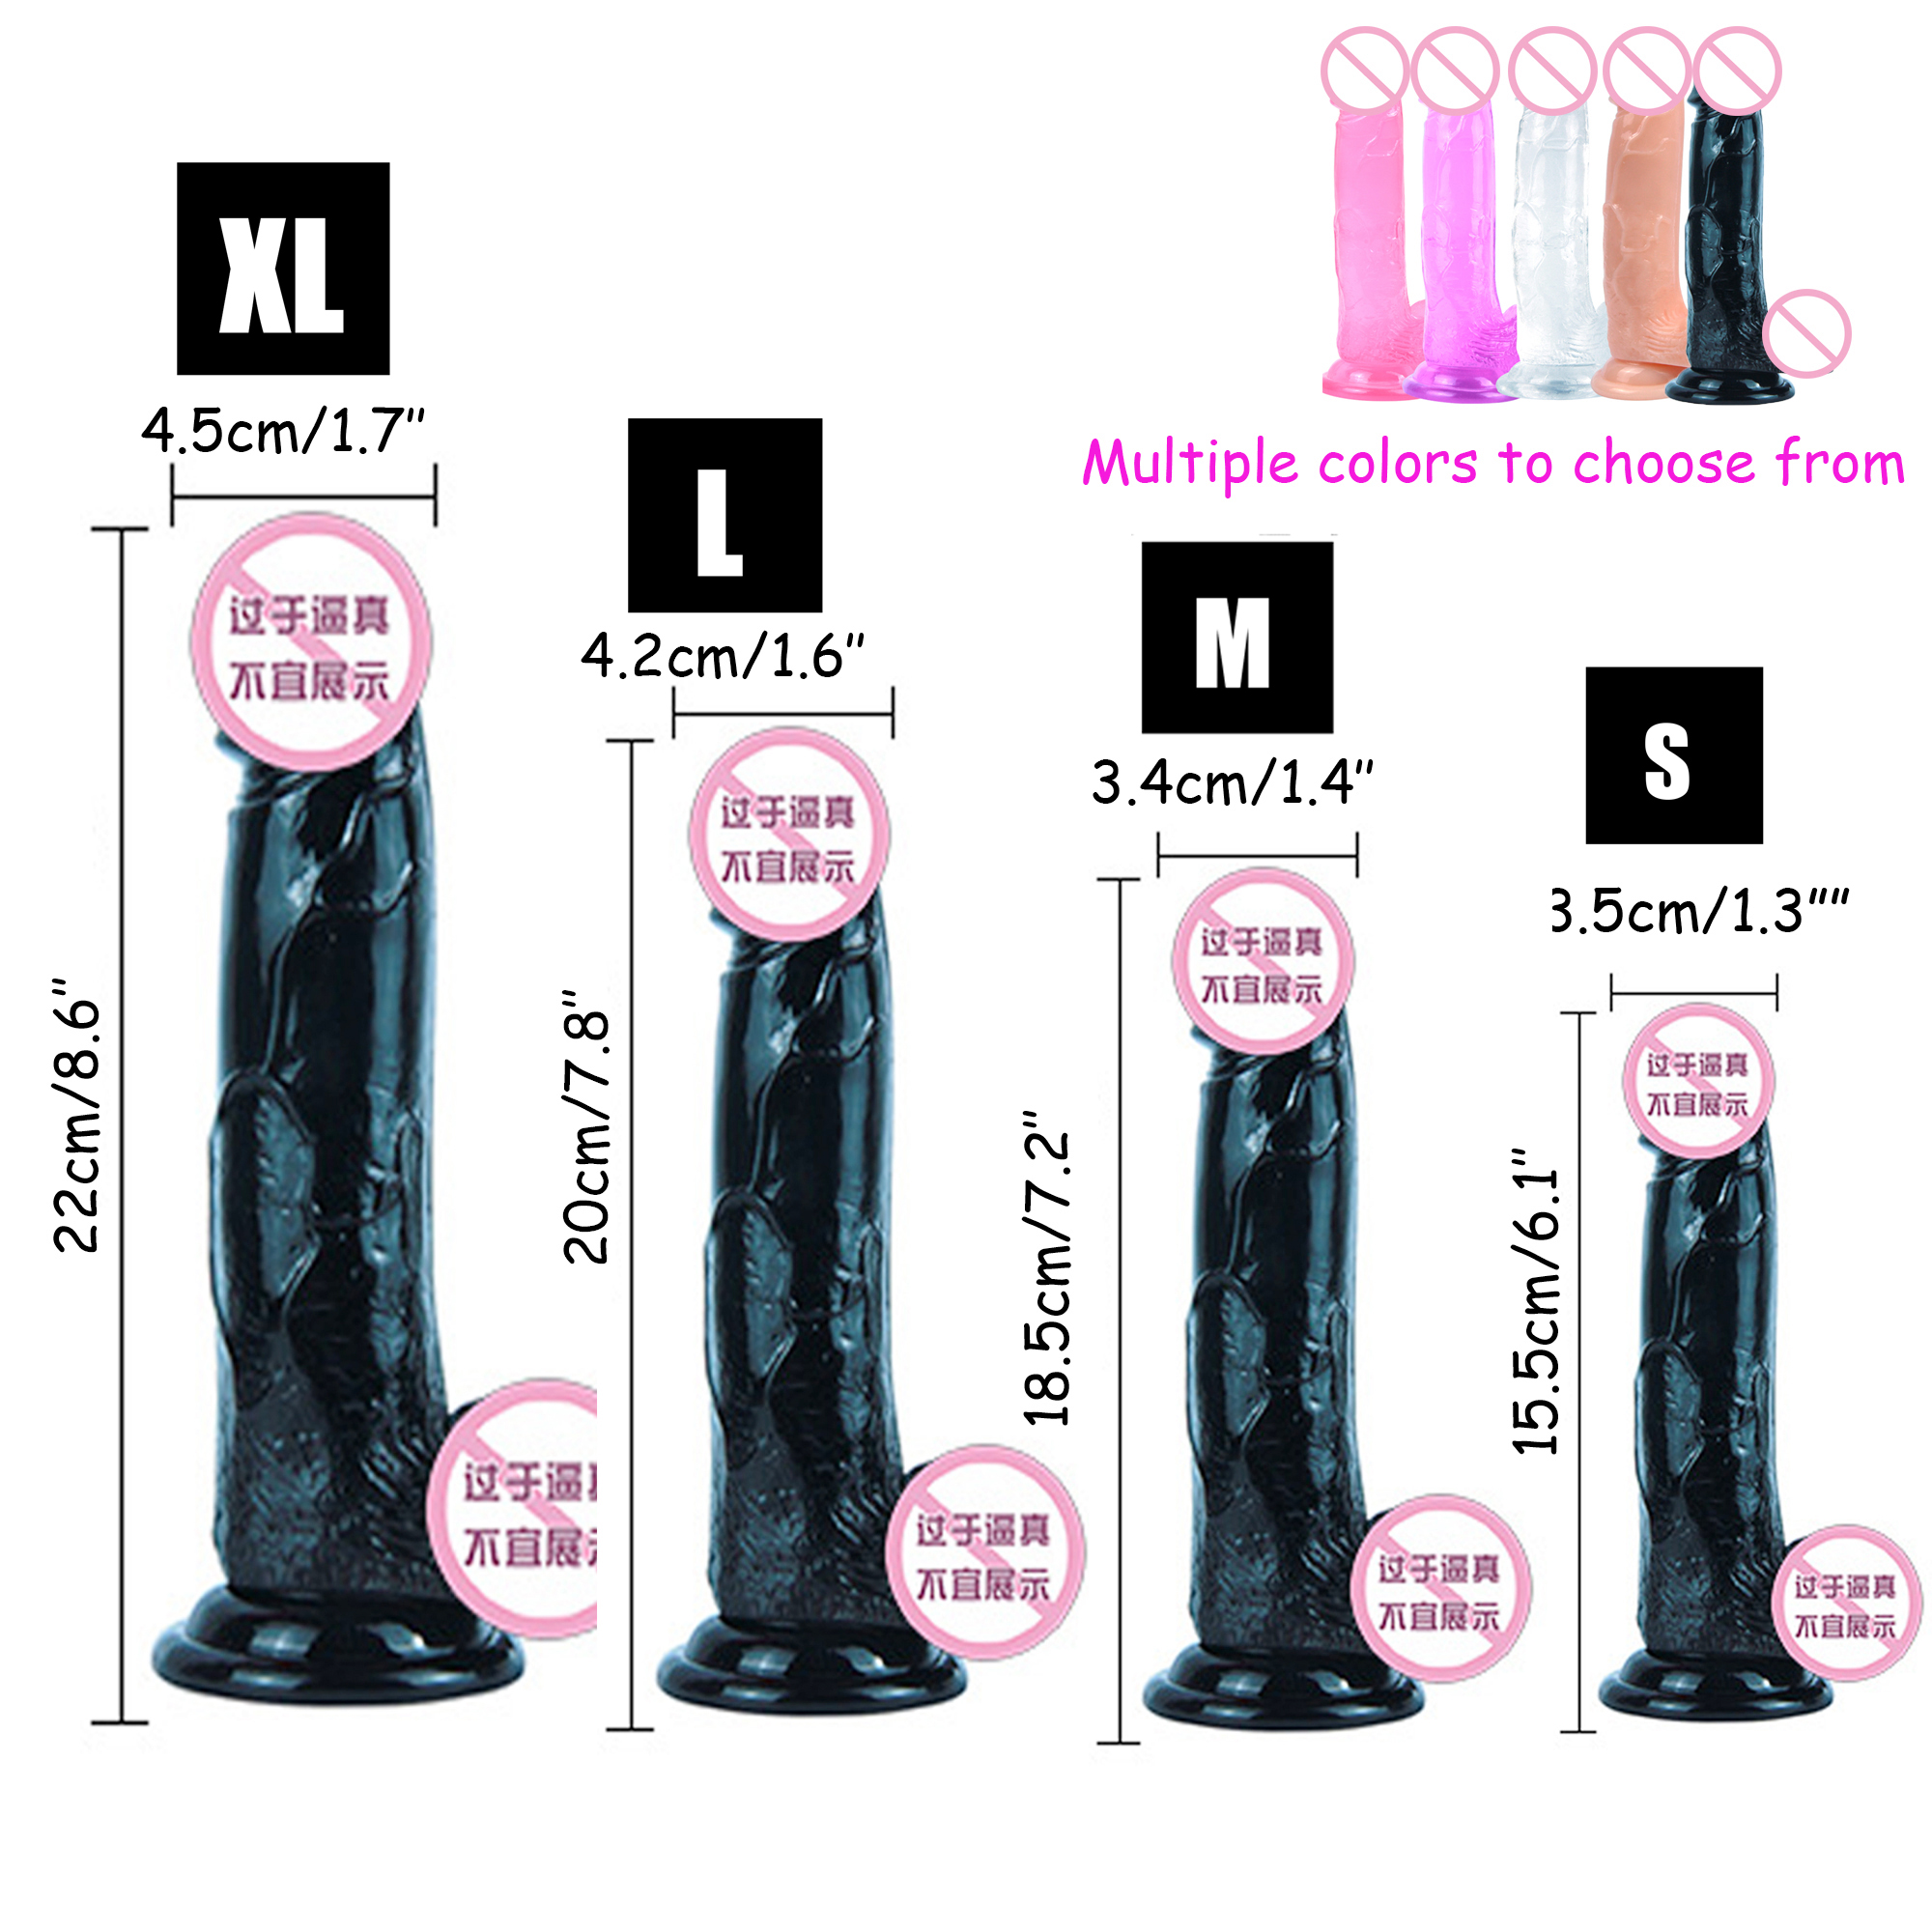 Soft Jelly Huge Dildo Realistic Anal Dildo <font><b>Penis</b></font> Suction Cup Male Dick Female Masturbation <font><b>Toys</b></font> for <font><b>Adult</b></font> <font><b>Sex</b></font> <font><b>Toys</b></font> for Woman image